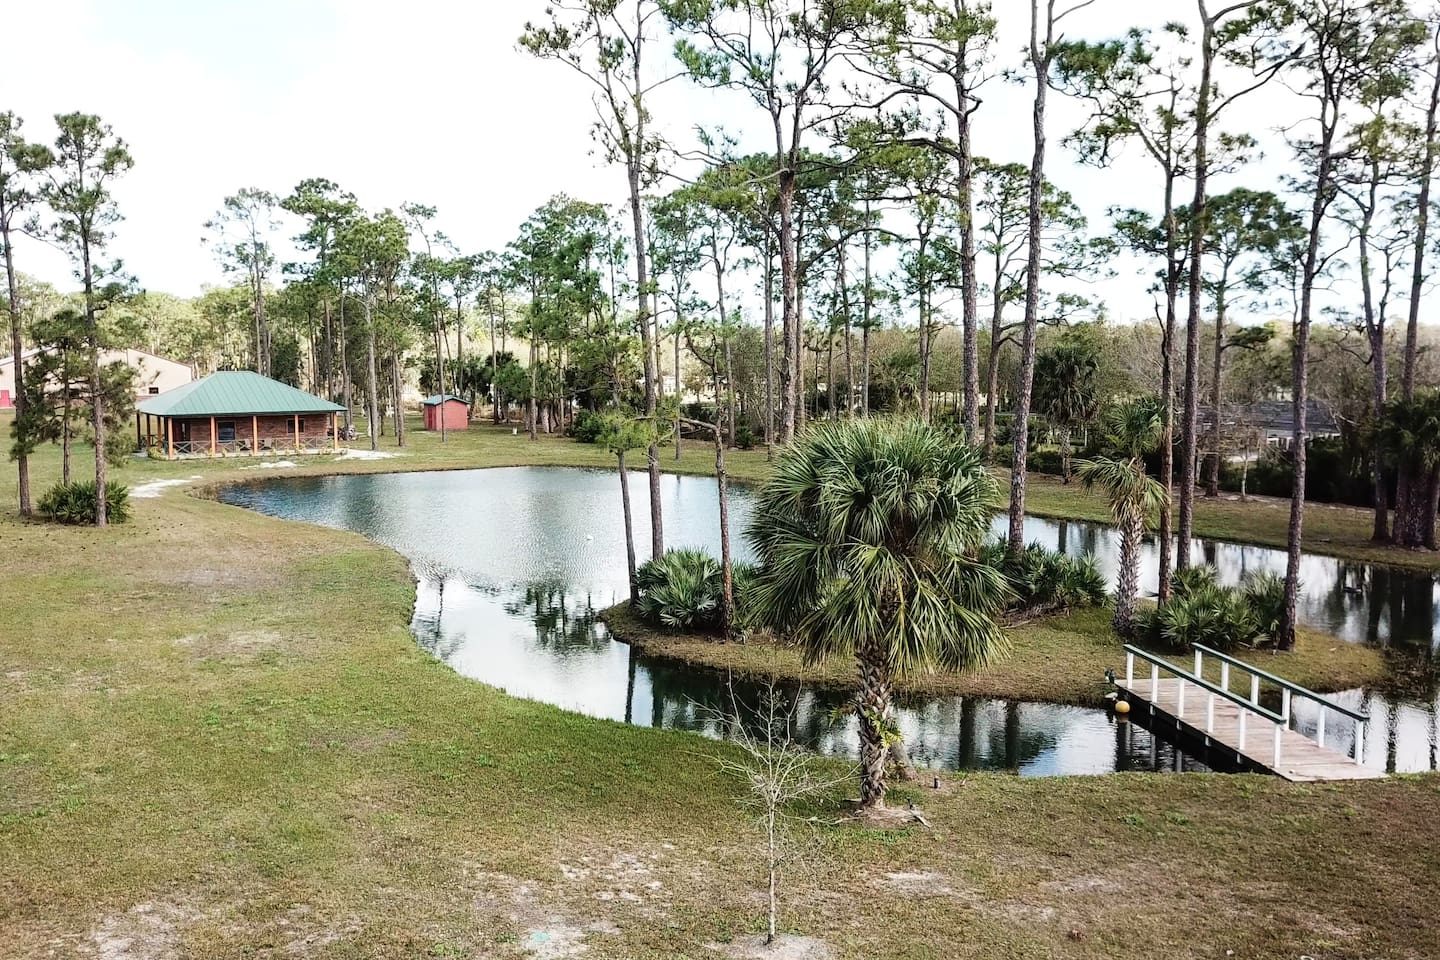 Peaceful cottage in Vero Beach on a quiet property 7 miles from the beach. Shopping outlets and groceries are close by and there is even fishing on site. Come enjoy the beautiful Vero Beach!